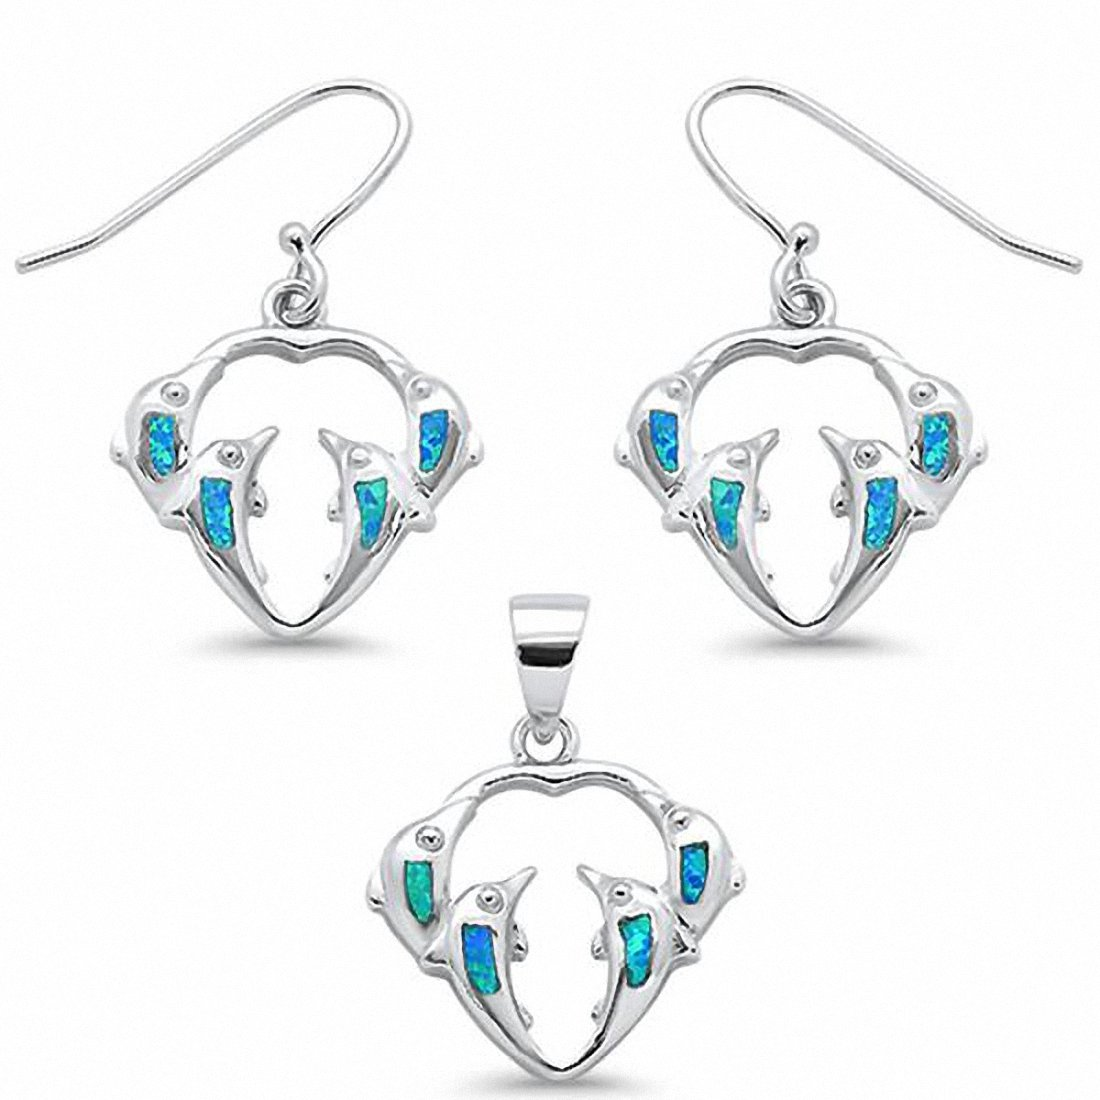 Dolphin Jewelry Set Pendant Fishhook Earrings 925 Sterling Silver Choose Color